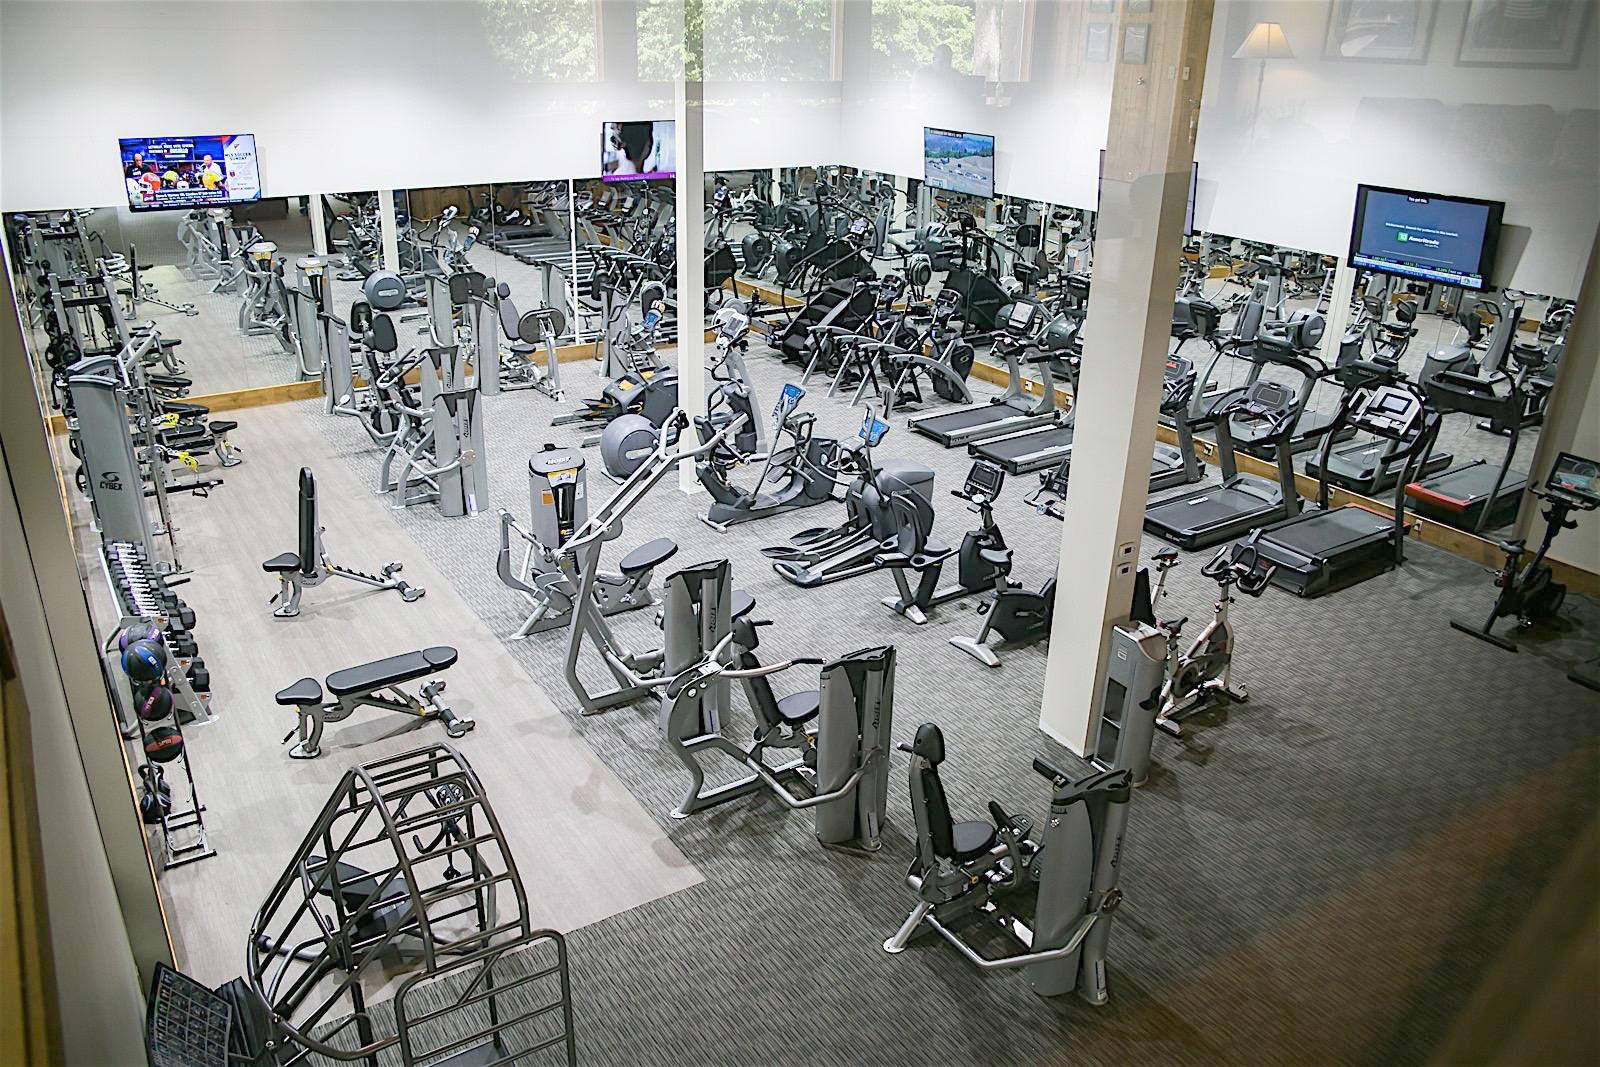 Hotel fitness room with dozens of workout stations